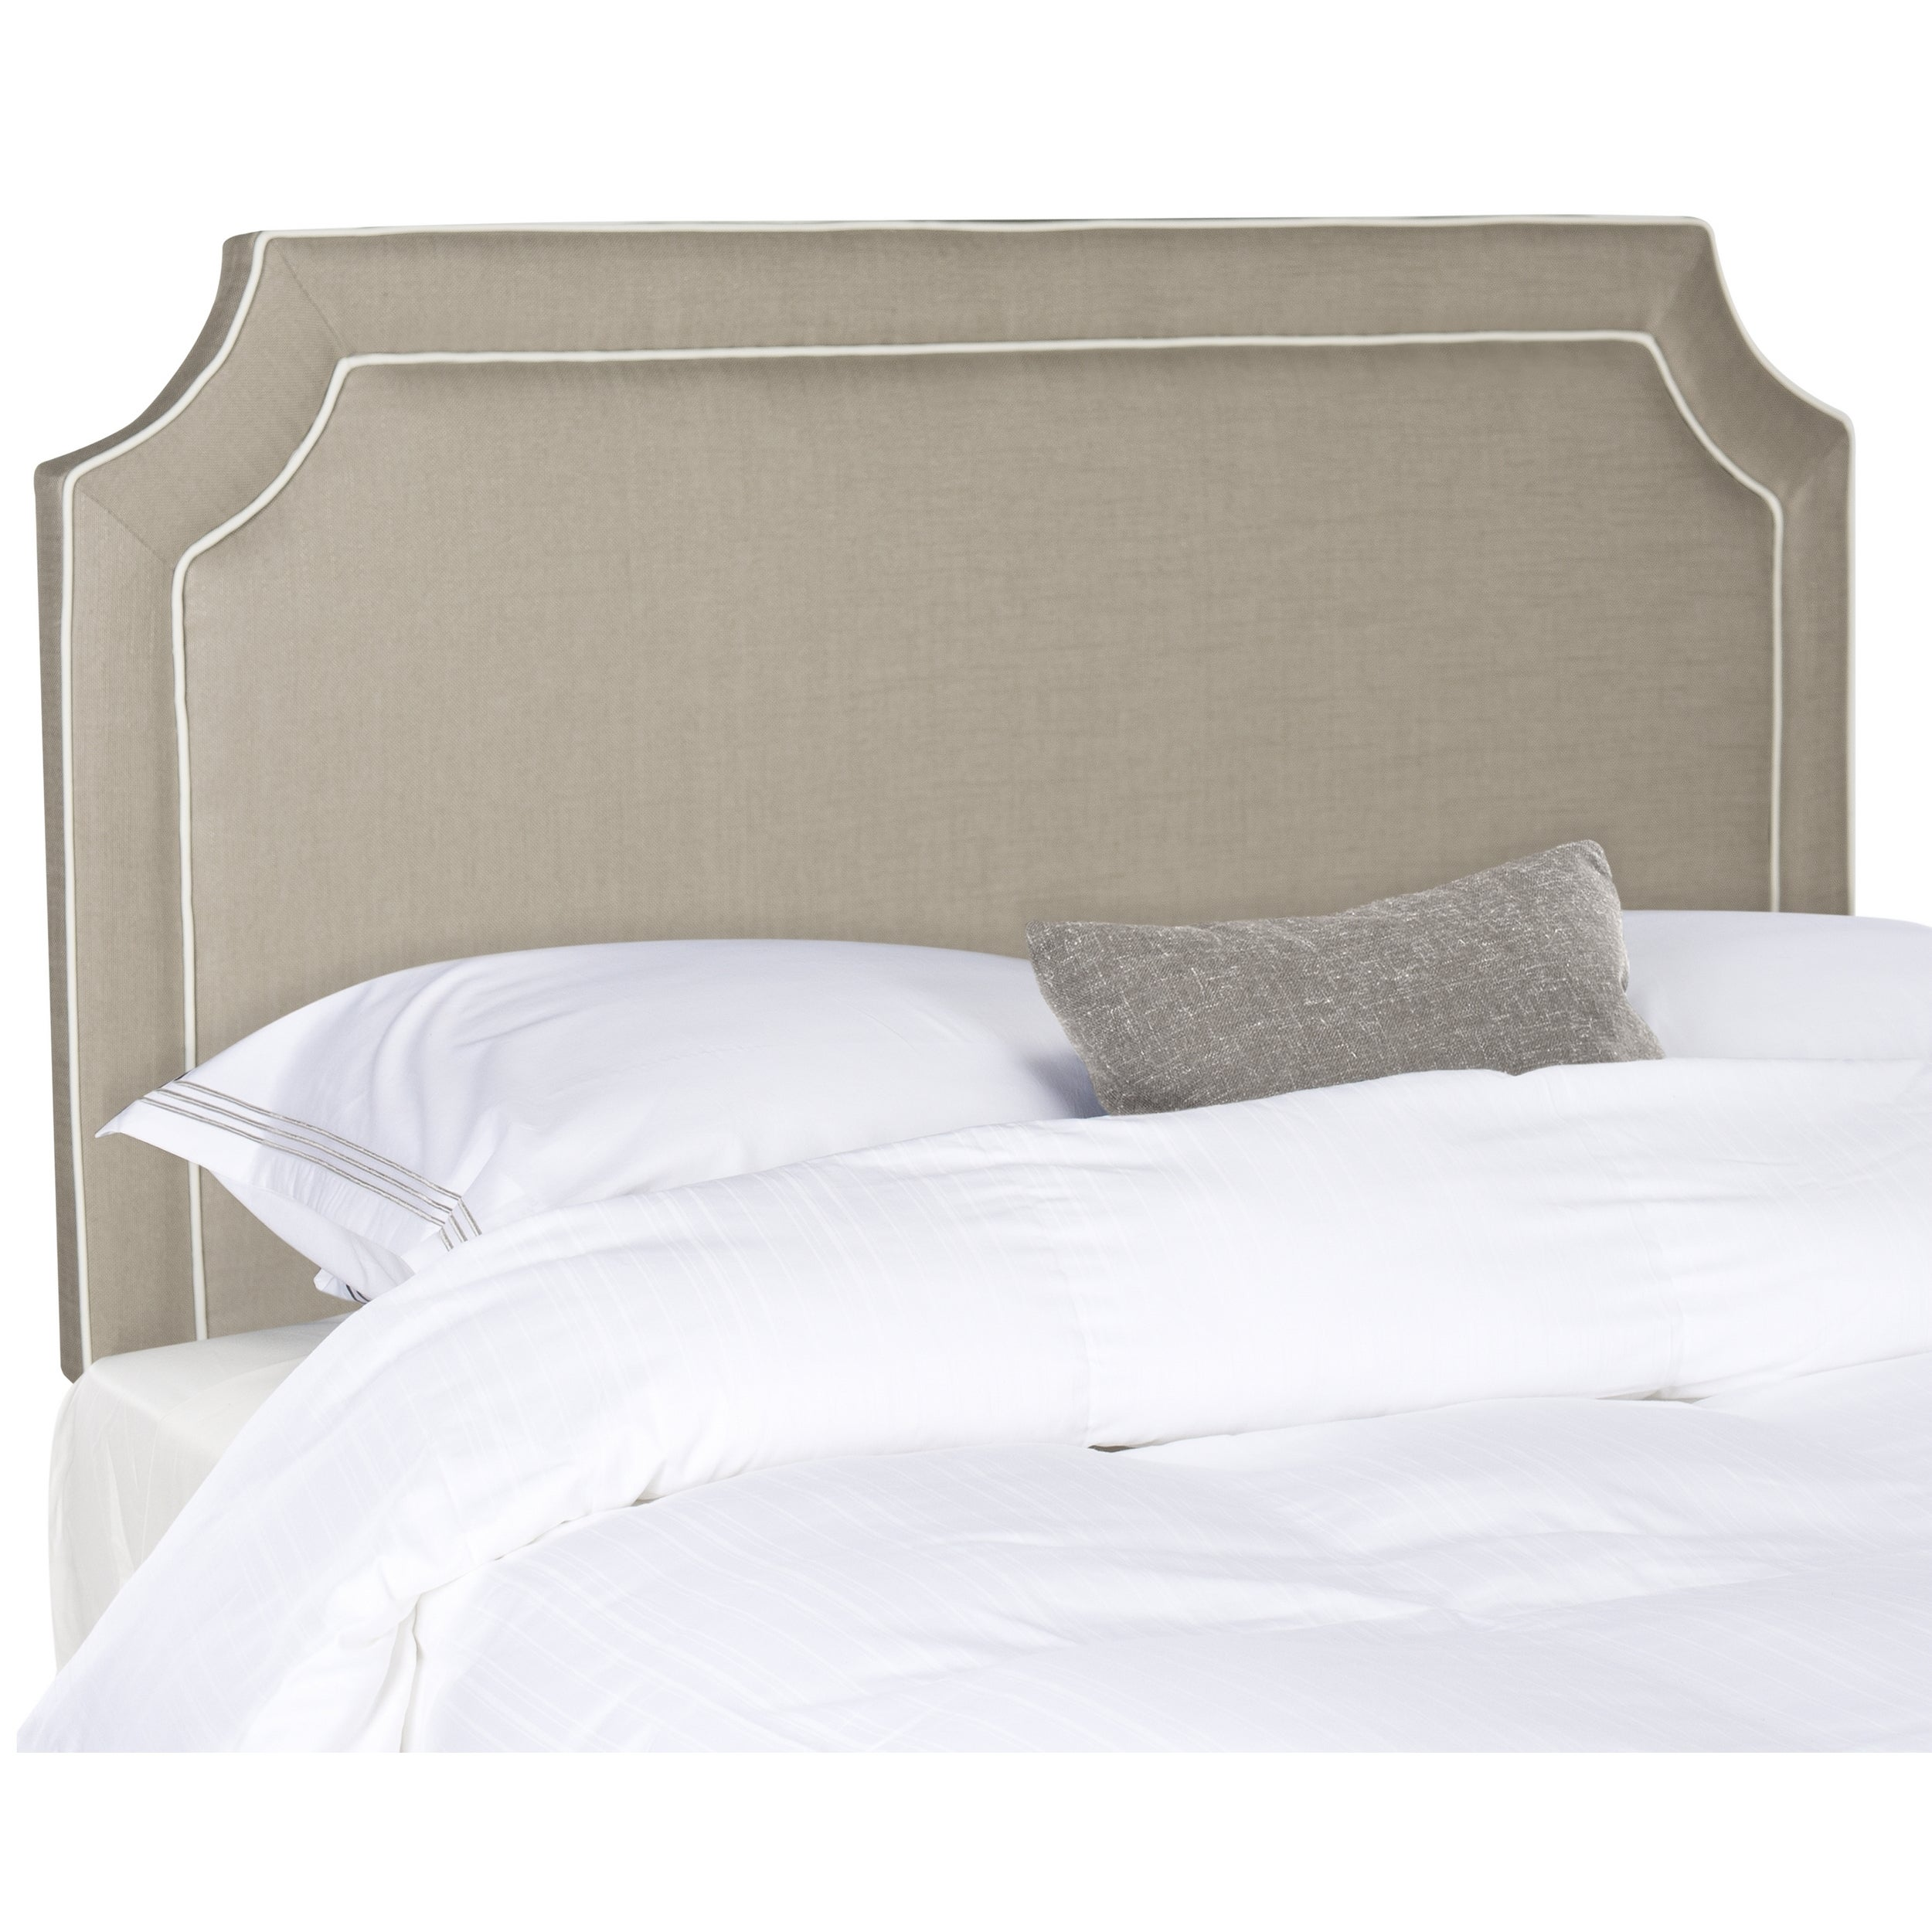 sale retailer 1b72c 6b9d2 Safavieh Dane Grey/ White Piping Upholstered Headboard (Queen)